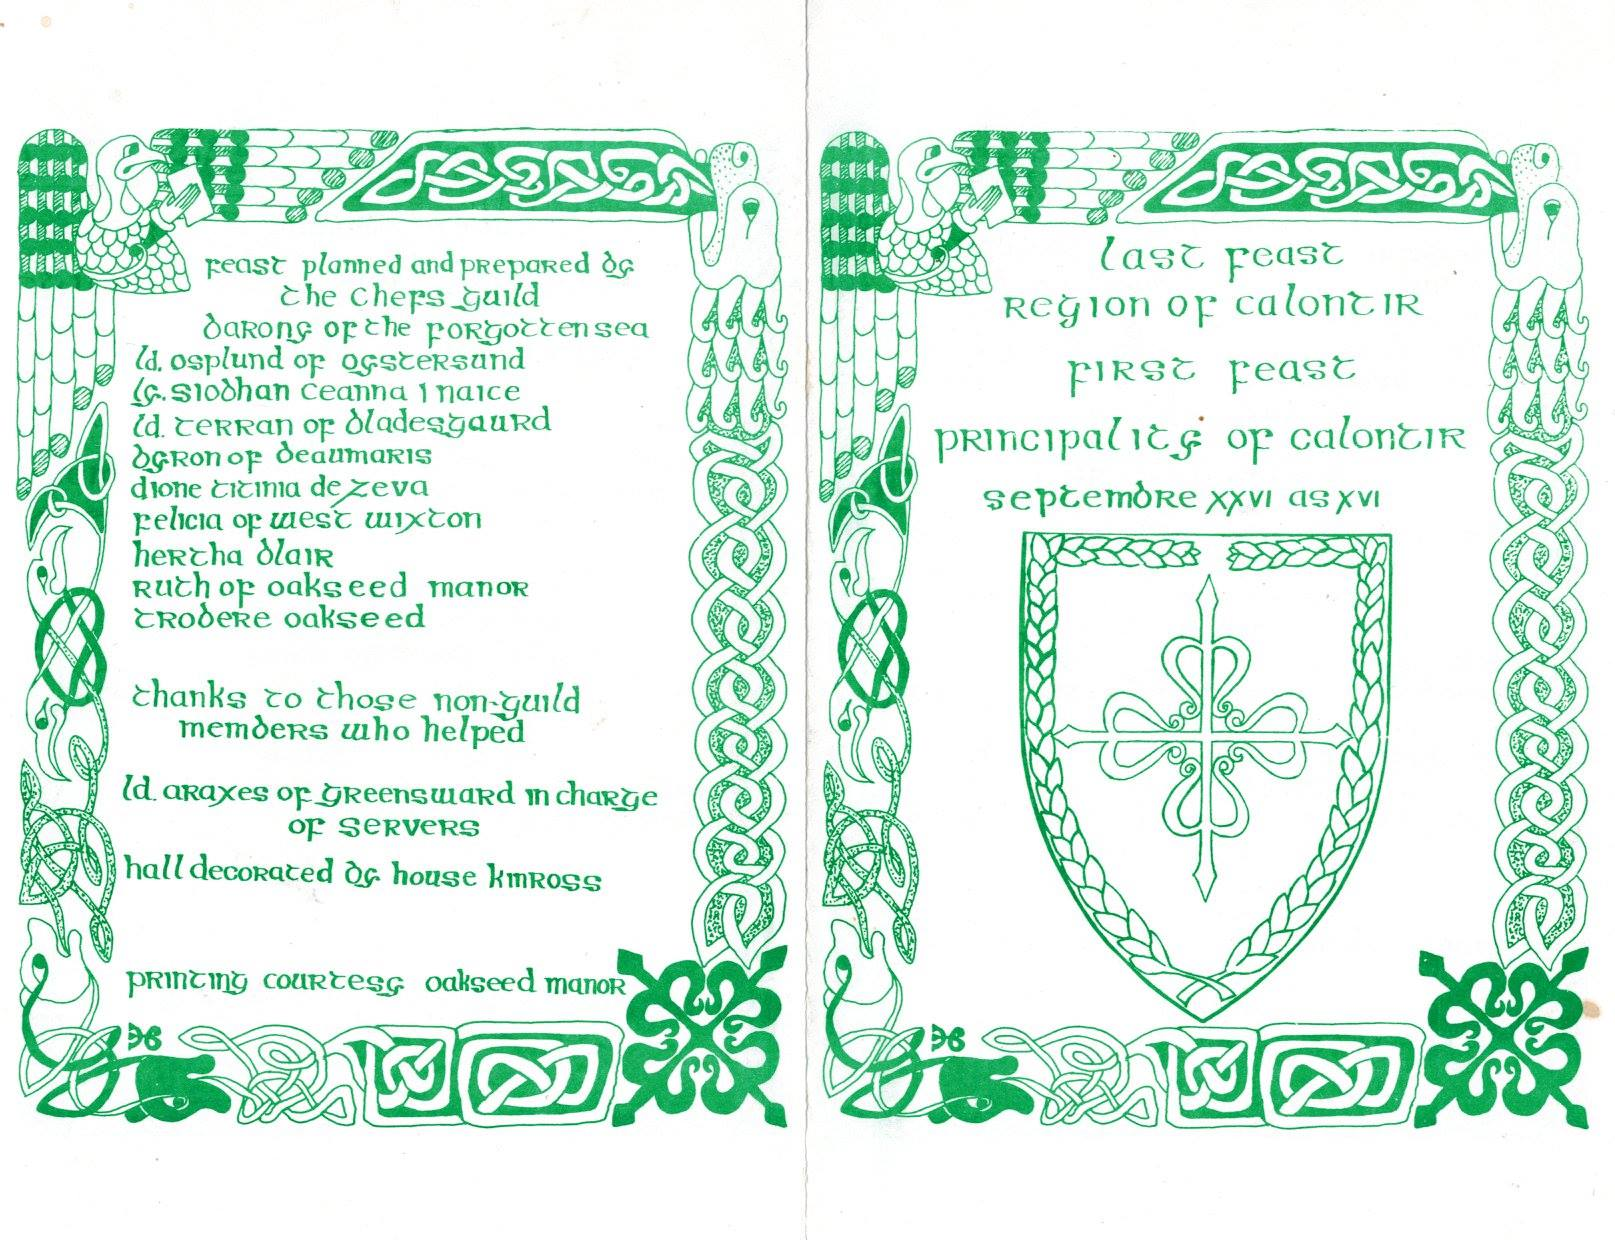 Outside of Flyer for the last feast of the Region of Calontir / first feast of the Principality of Calontir held on 26 September AS XVI (1981).